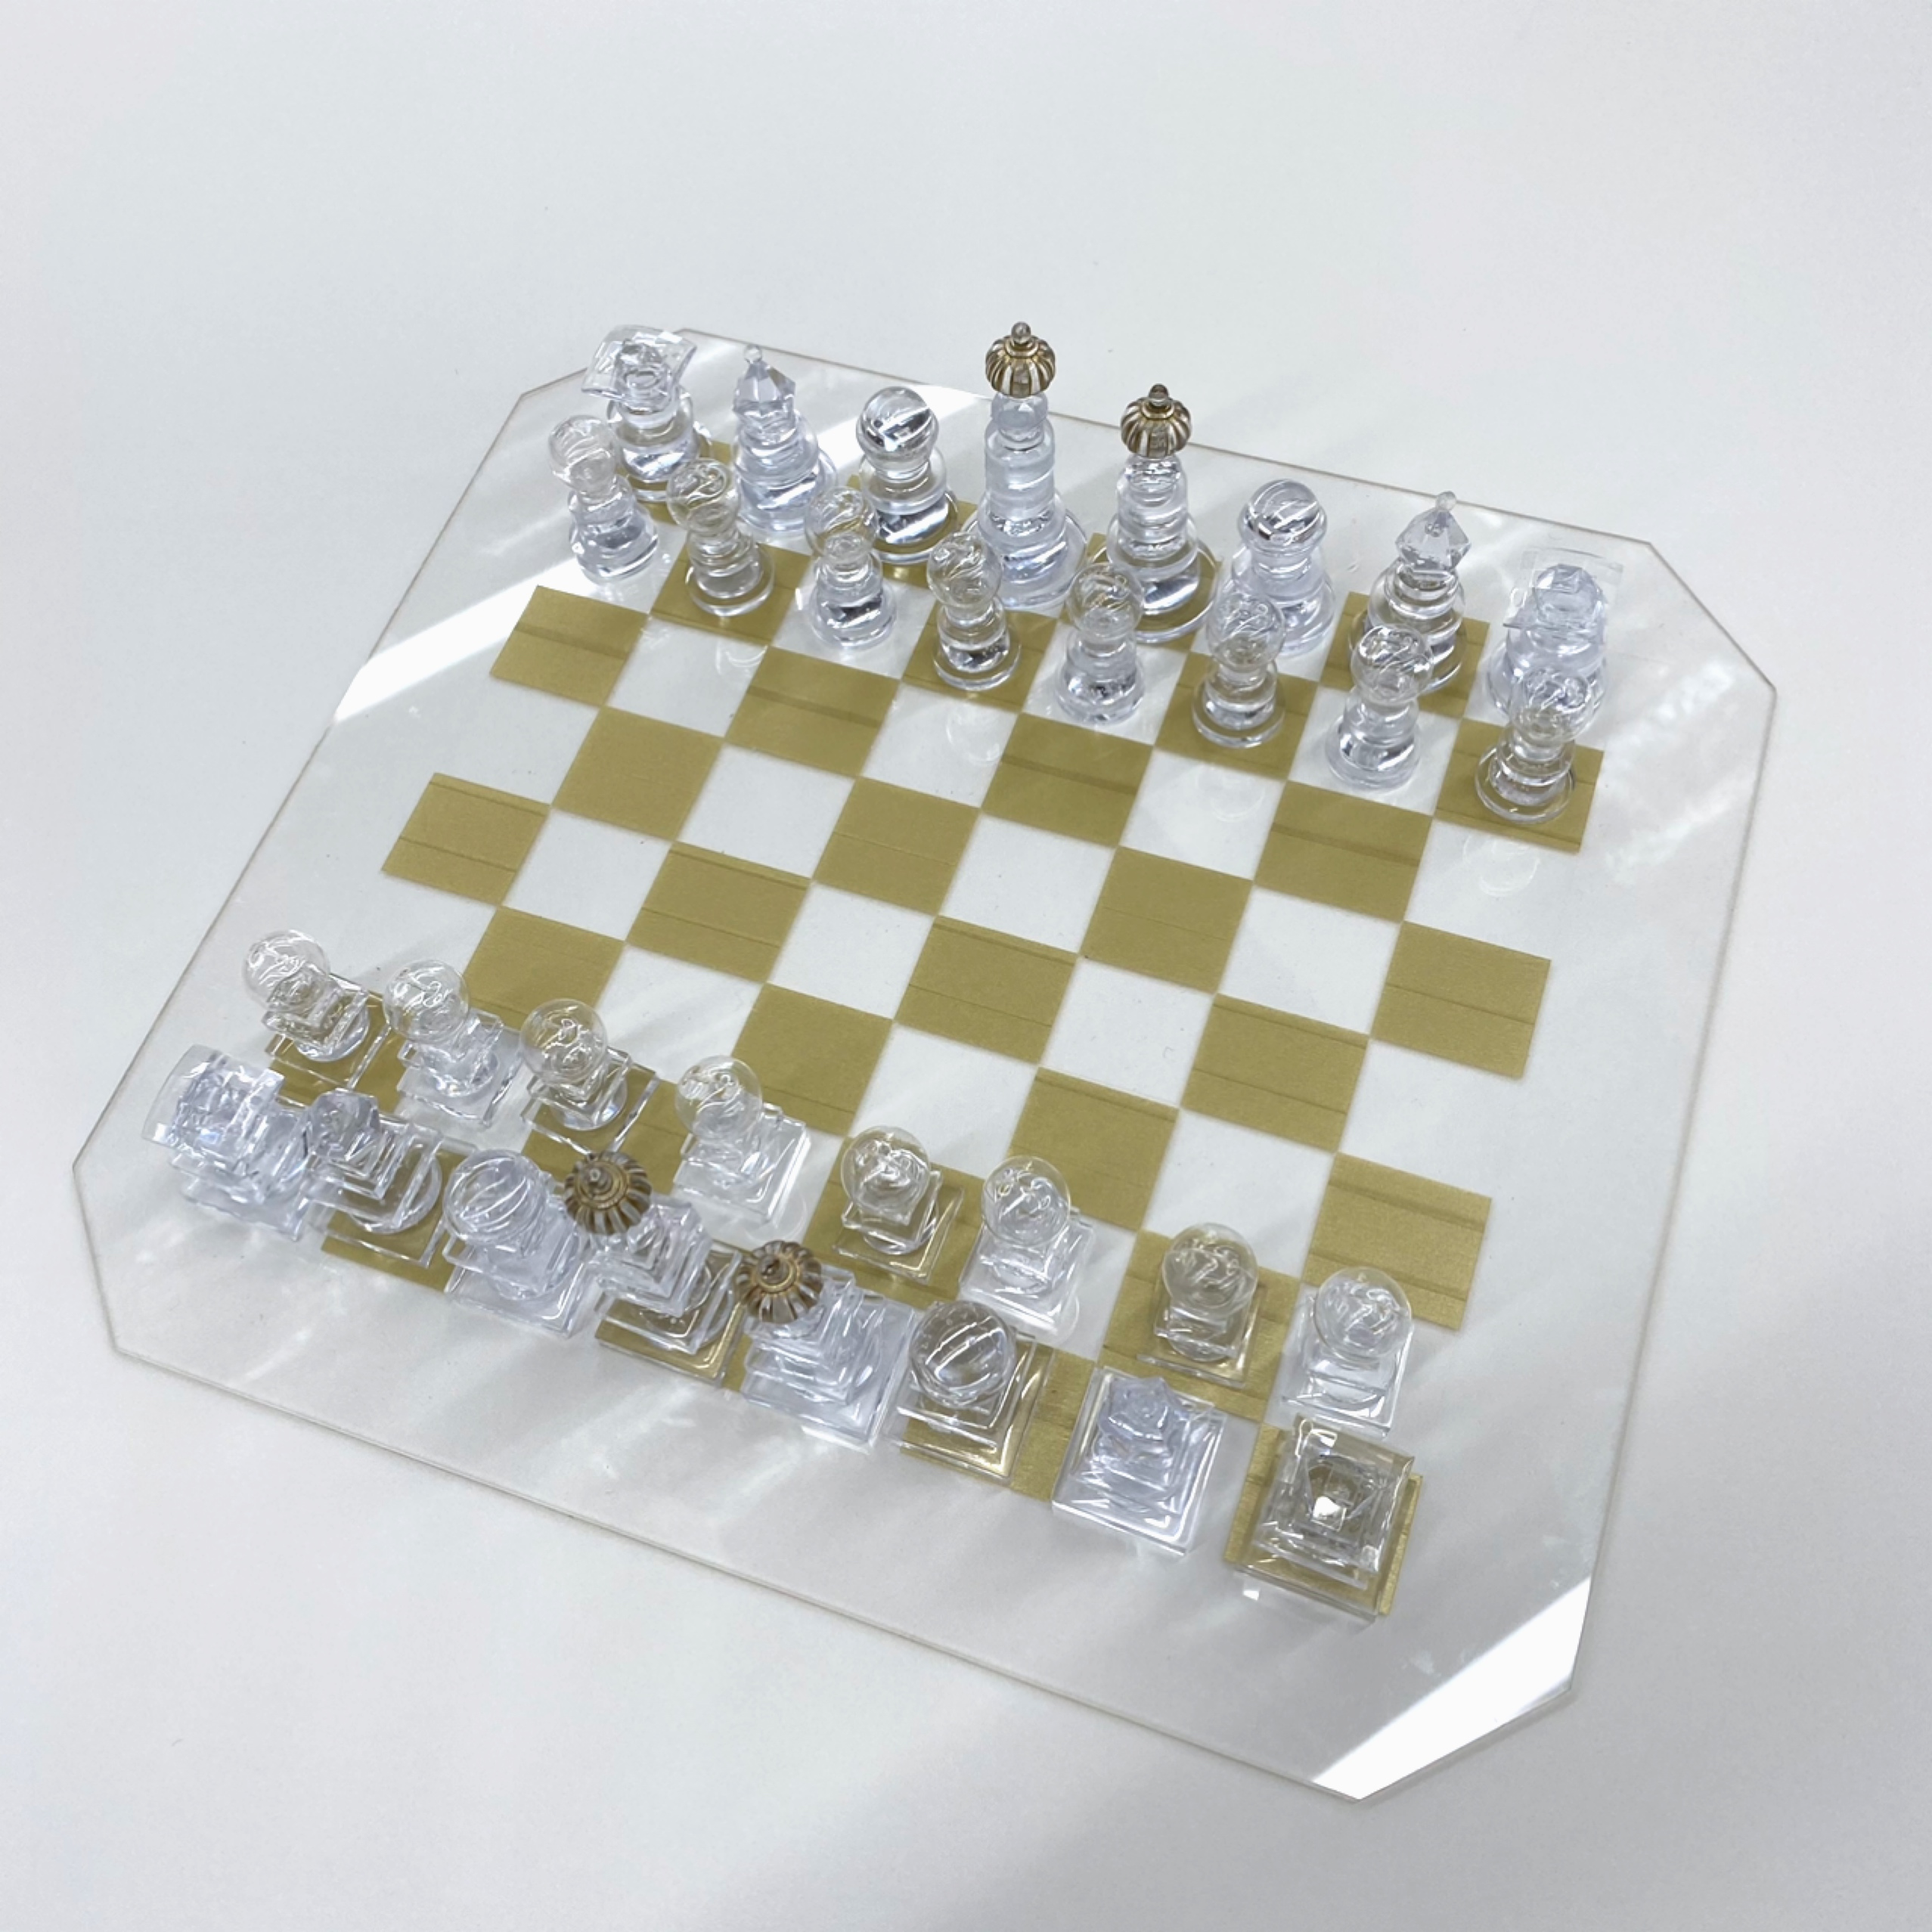 Invisible Chess (2021)